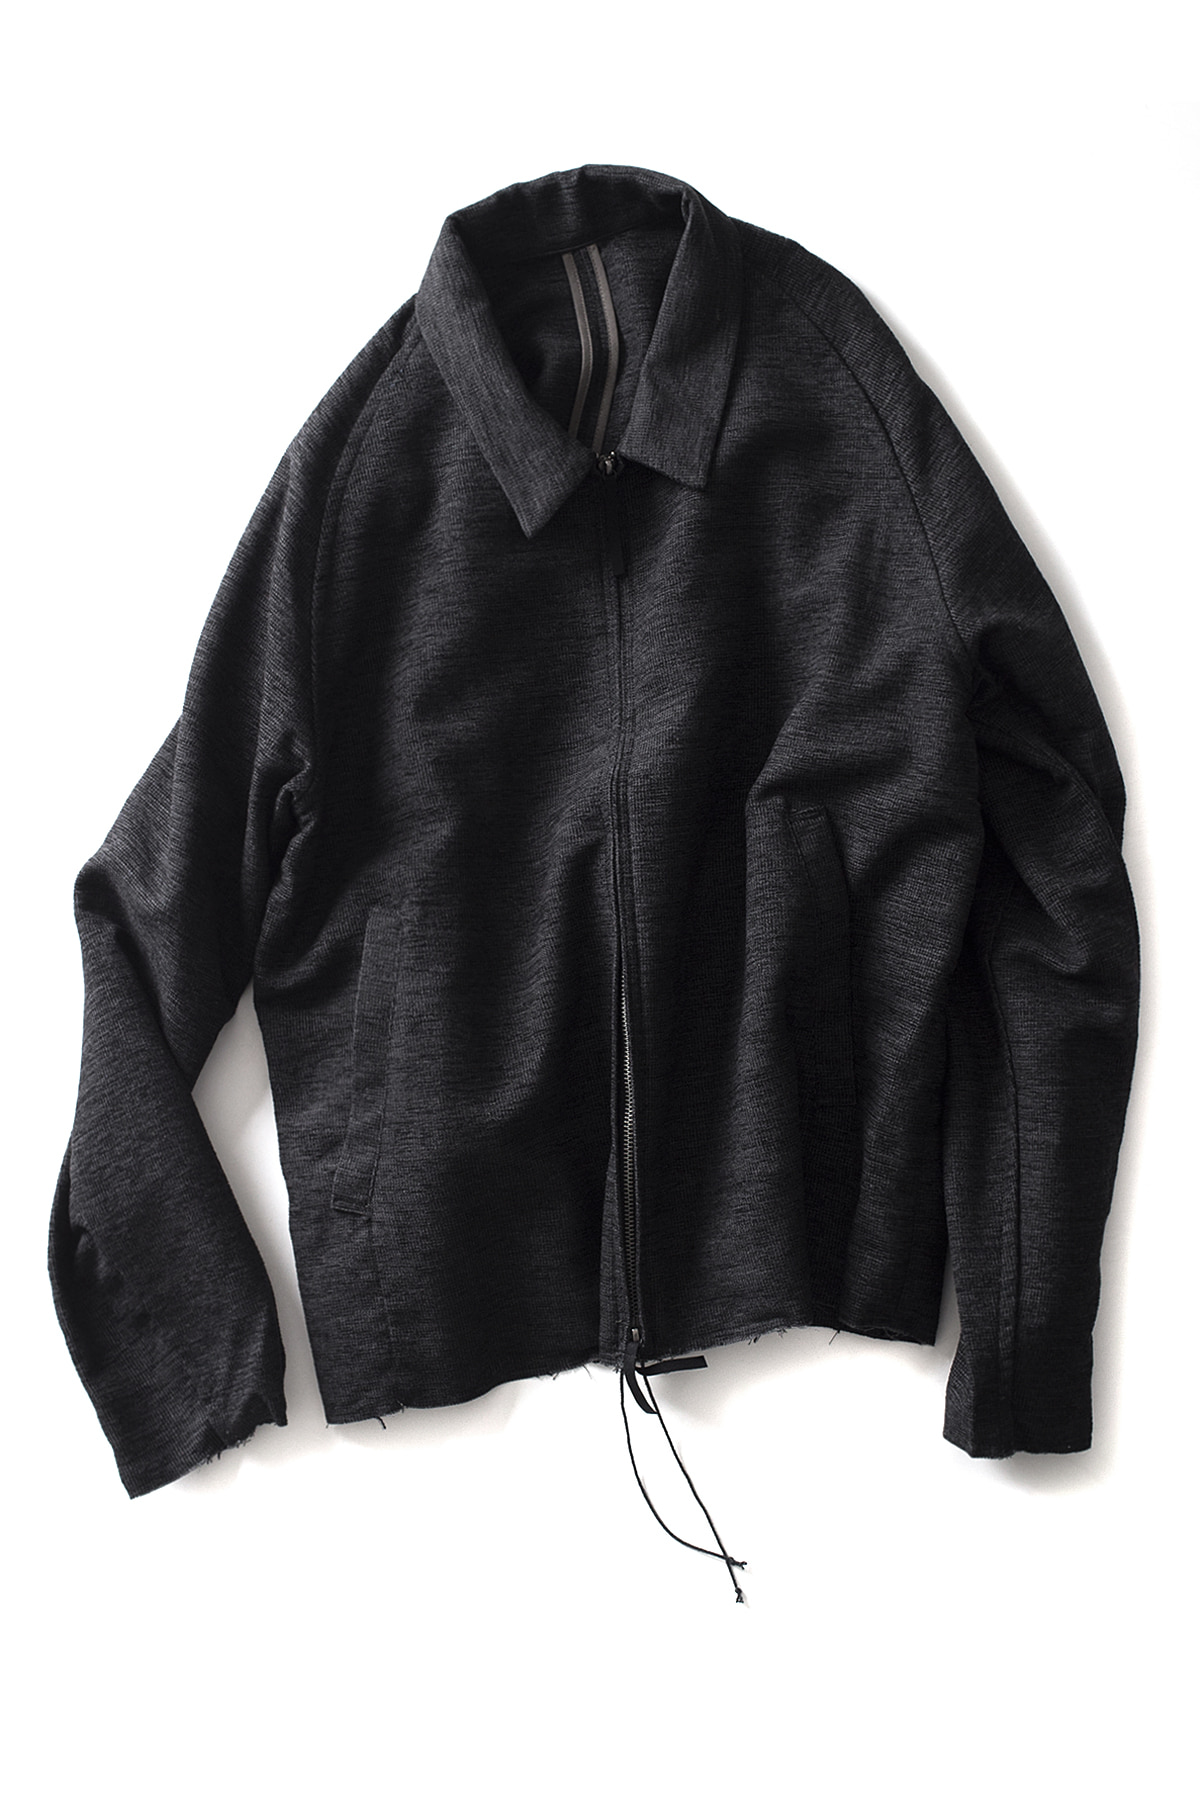 bukht : Drop Collar Blouson (Navy / Black)